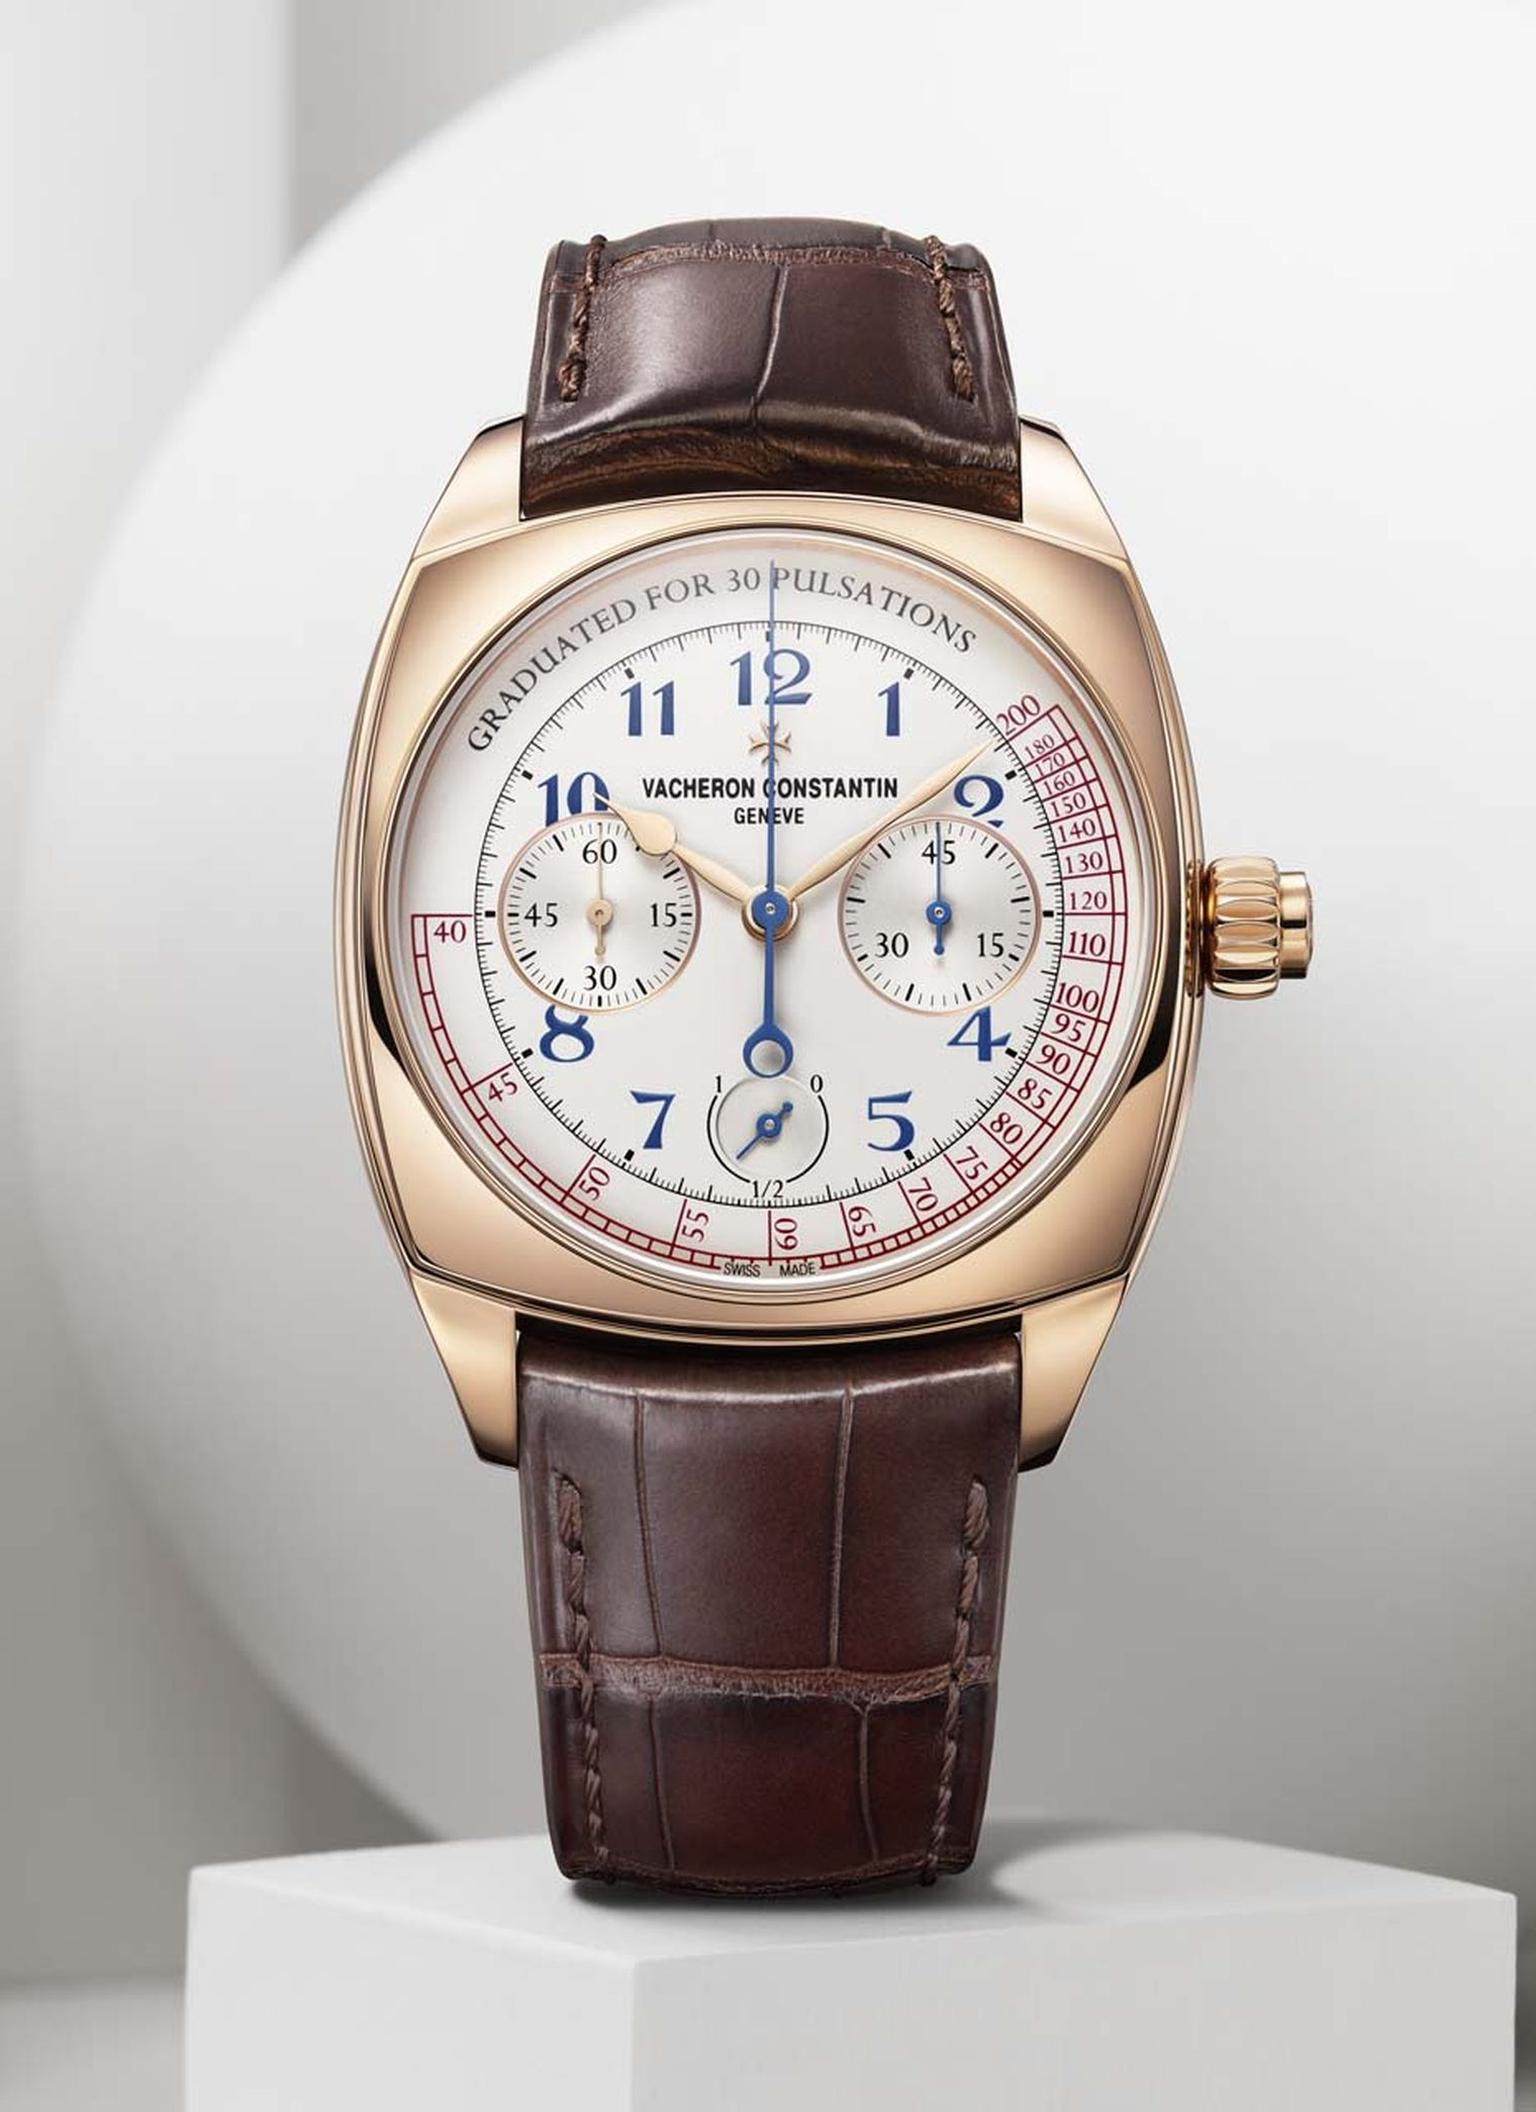 The Vacheron Constantin Harmony Chronograph calibre 3300 is a contemporary incarnation of a 1928 Vacheron doctor's watch. The new Harmony collection was presented in 2015 to celebrate the Maison's 260th anniversary.